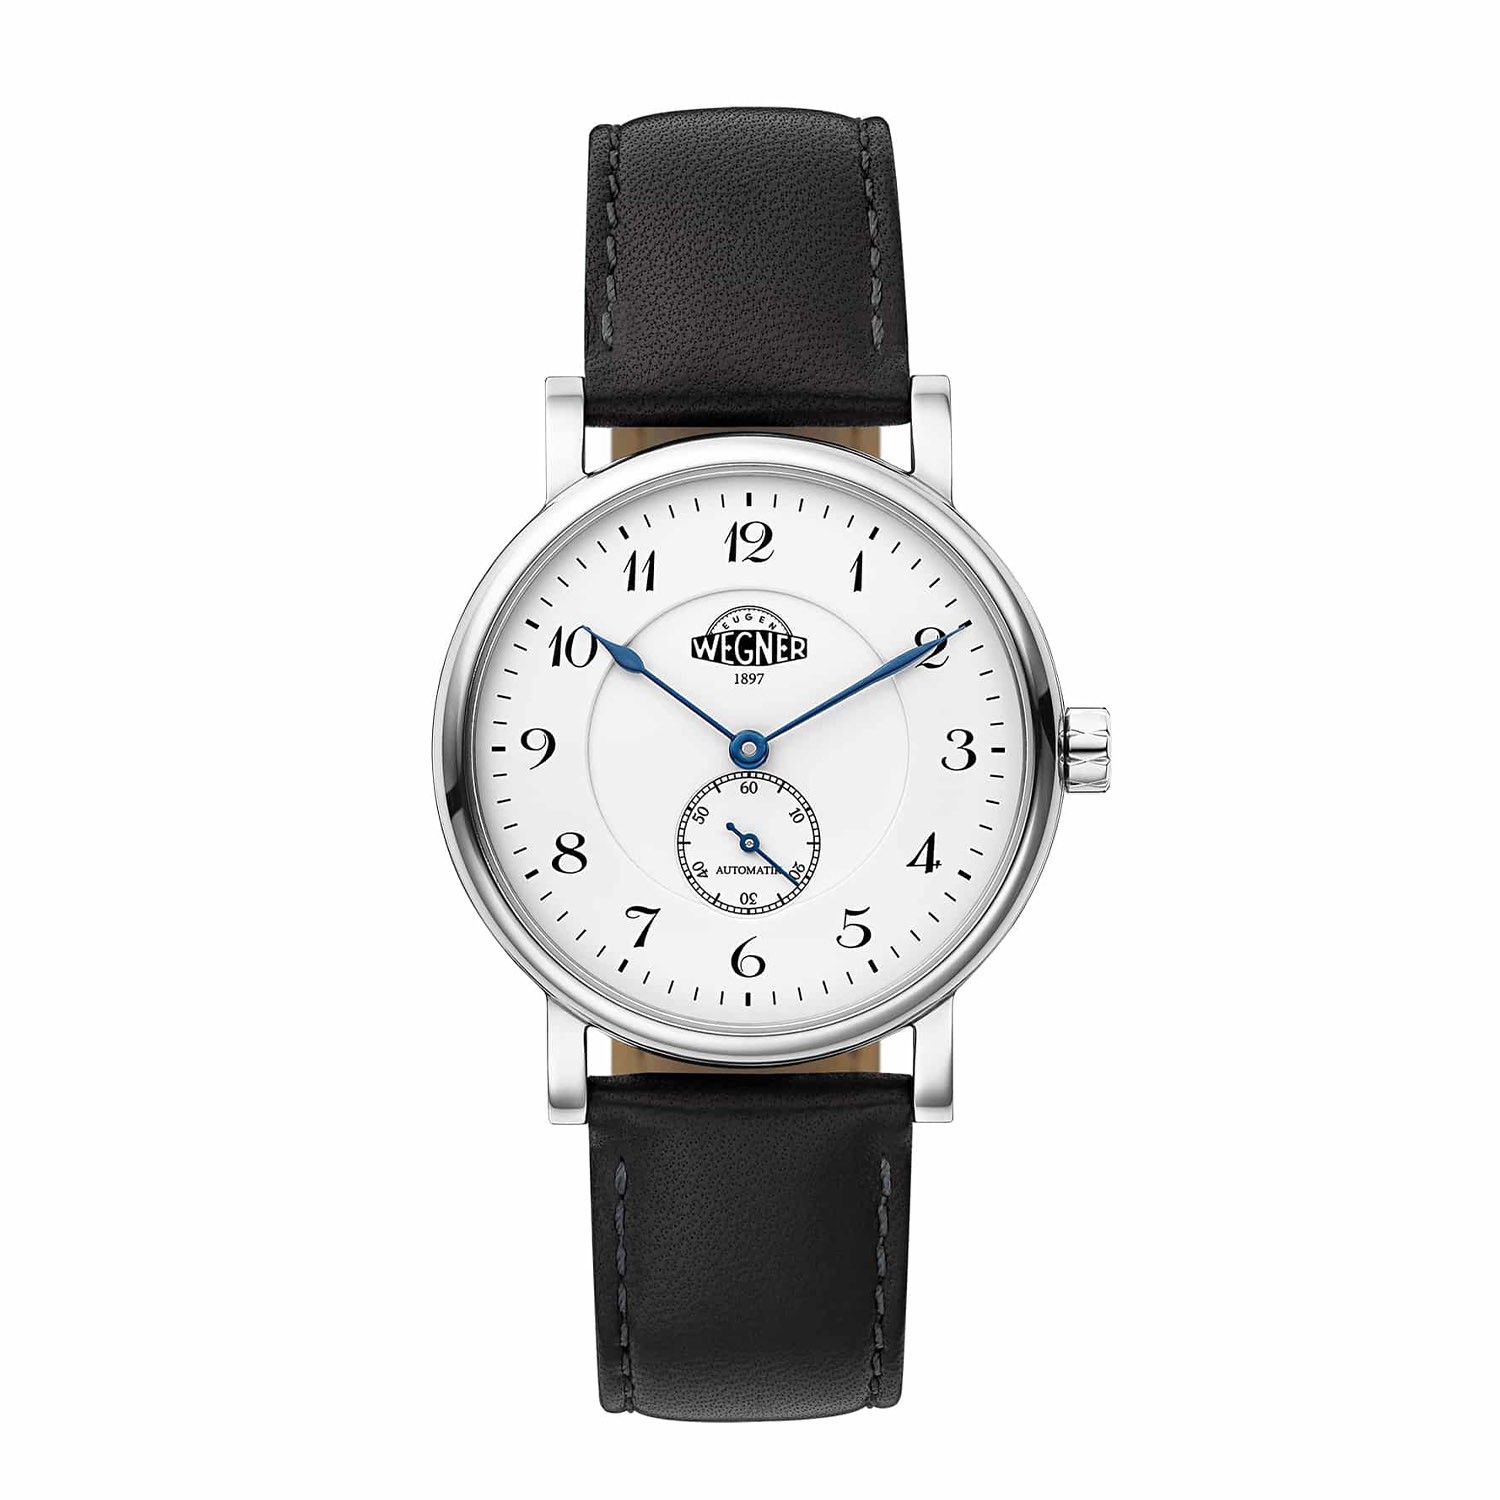 Eugen Wegner Watches Kickstarter